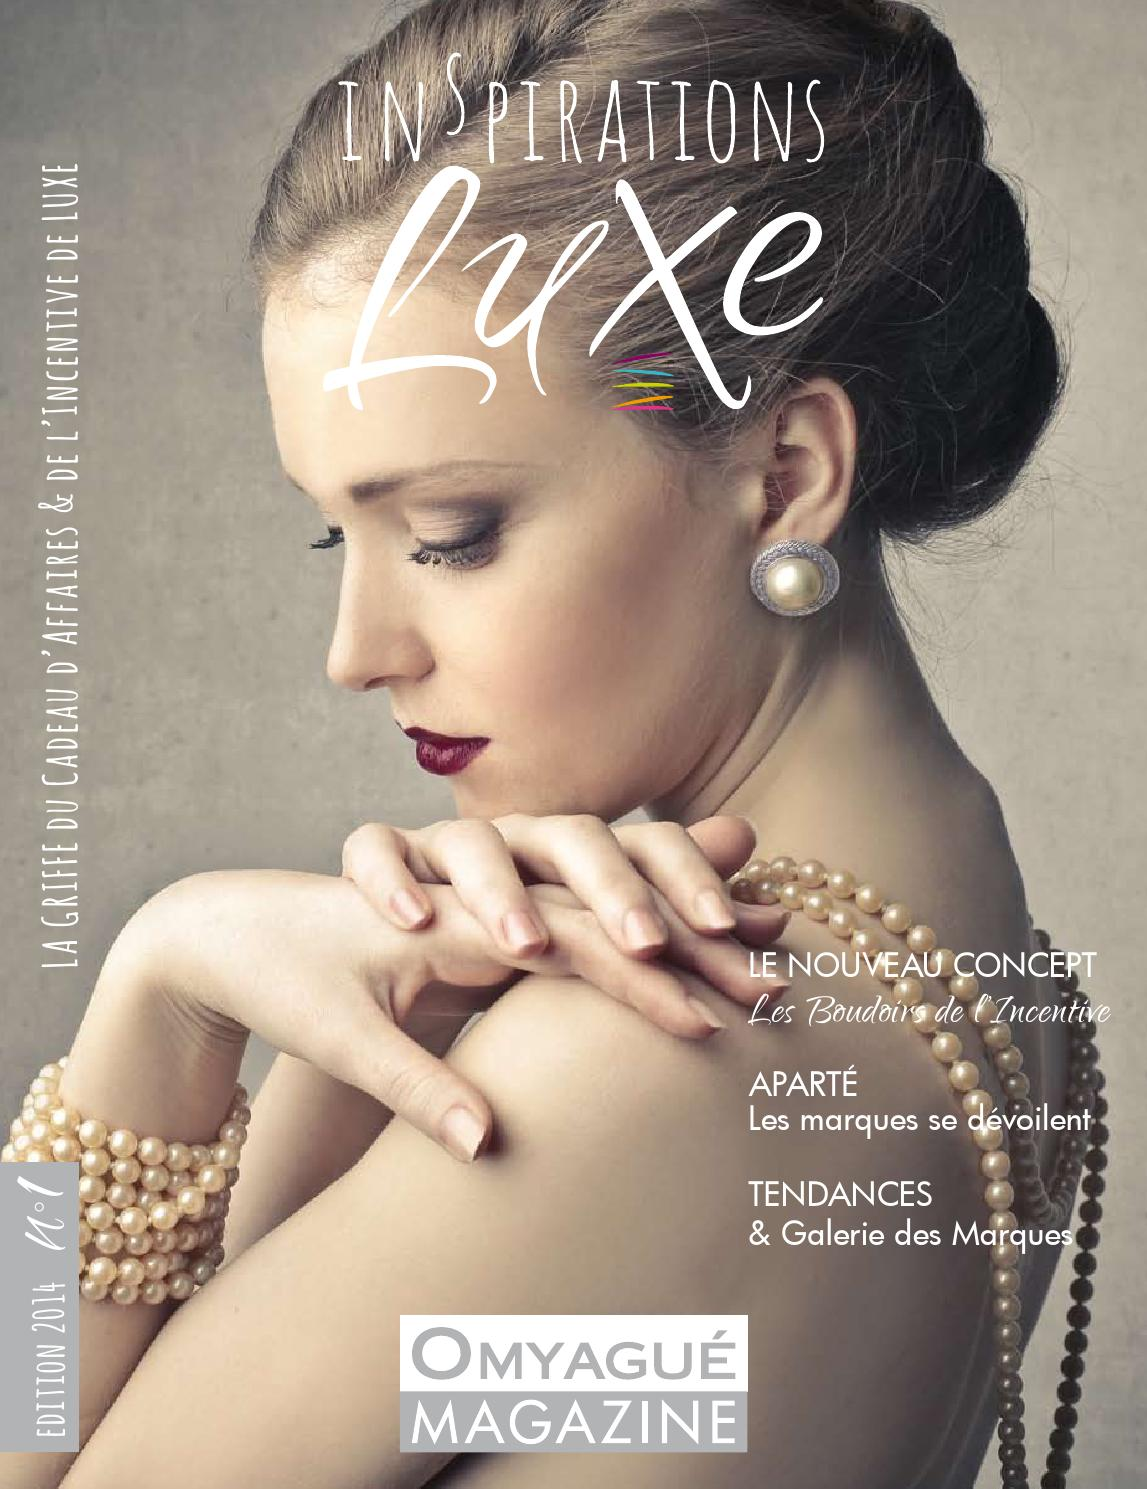 Magazine Inspirations Luxe édition n°1 by OMYAGUE issuu